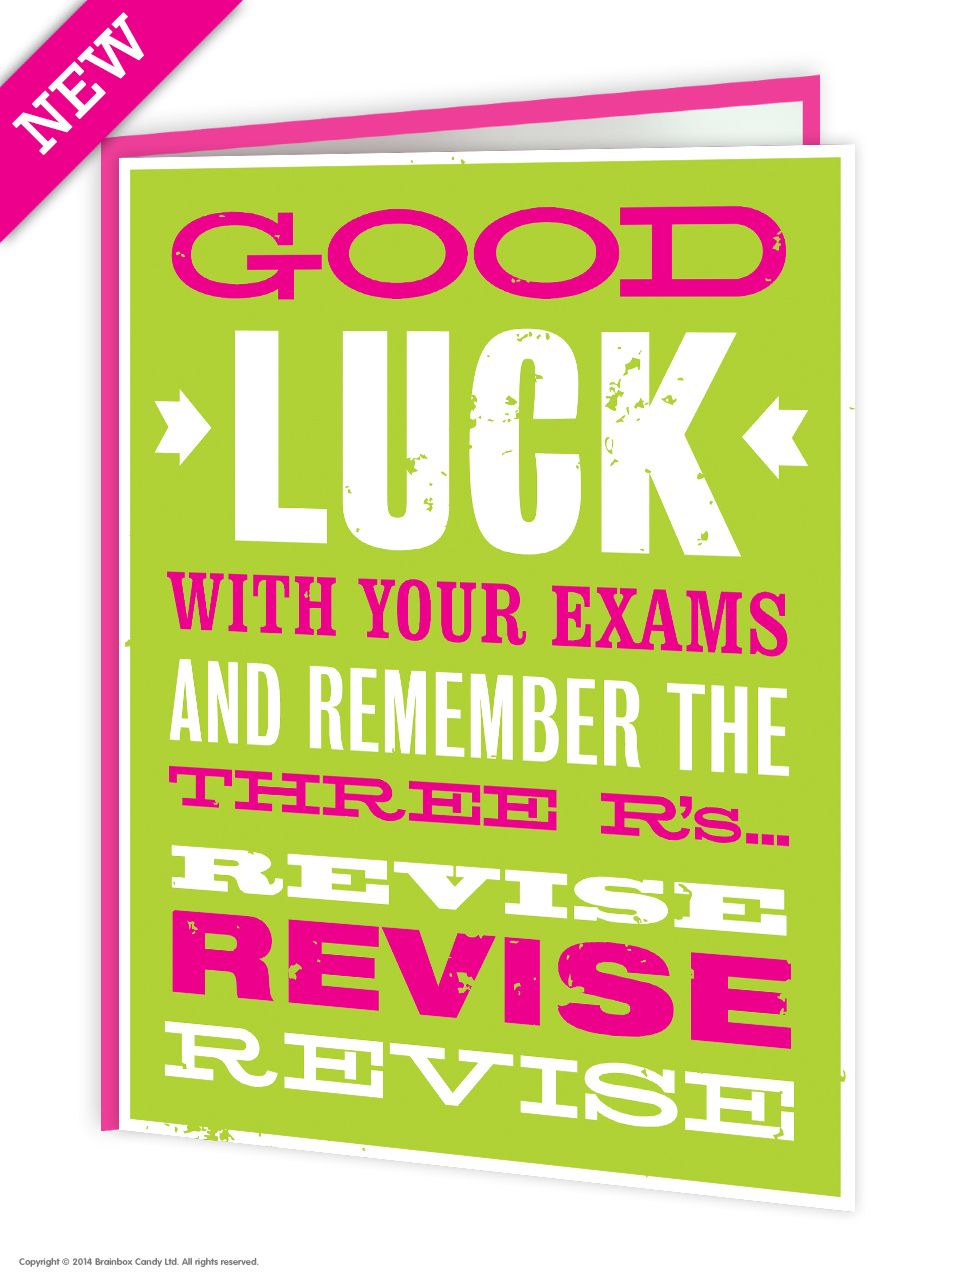 Good luck exams card cards free postage on this brainbox candy good luck exams greetings card designed and manufactured in the uk by us and available to buy here at the best price kristyandbryce Images